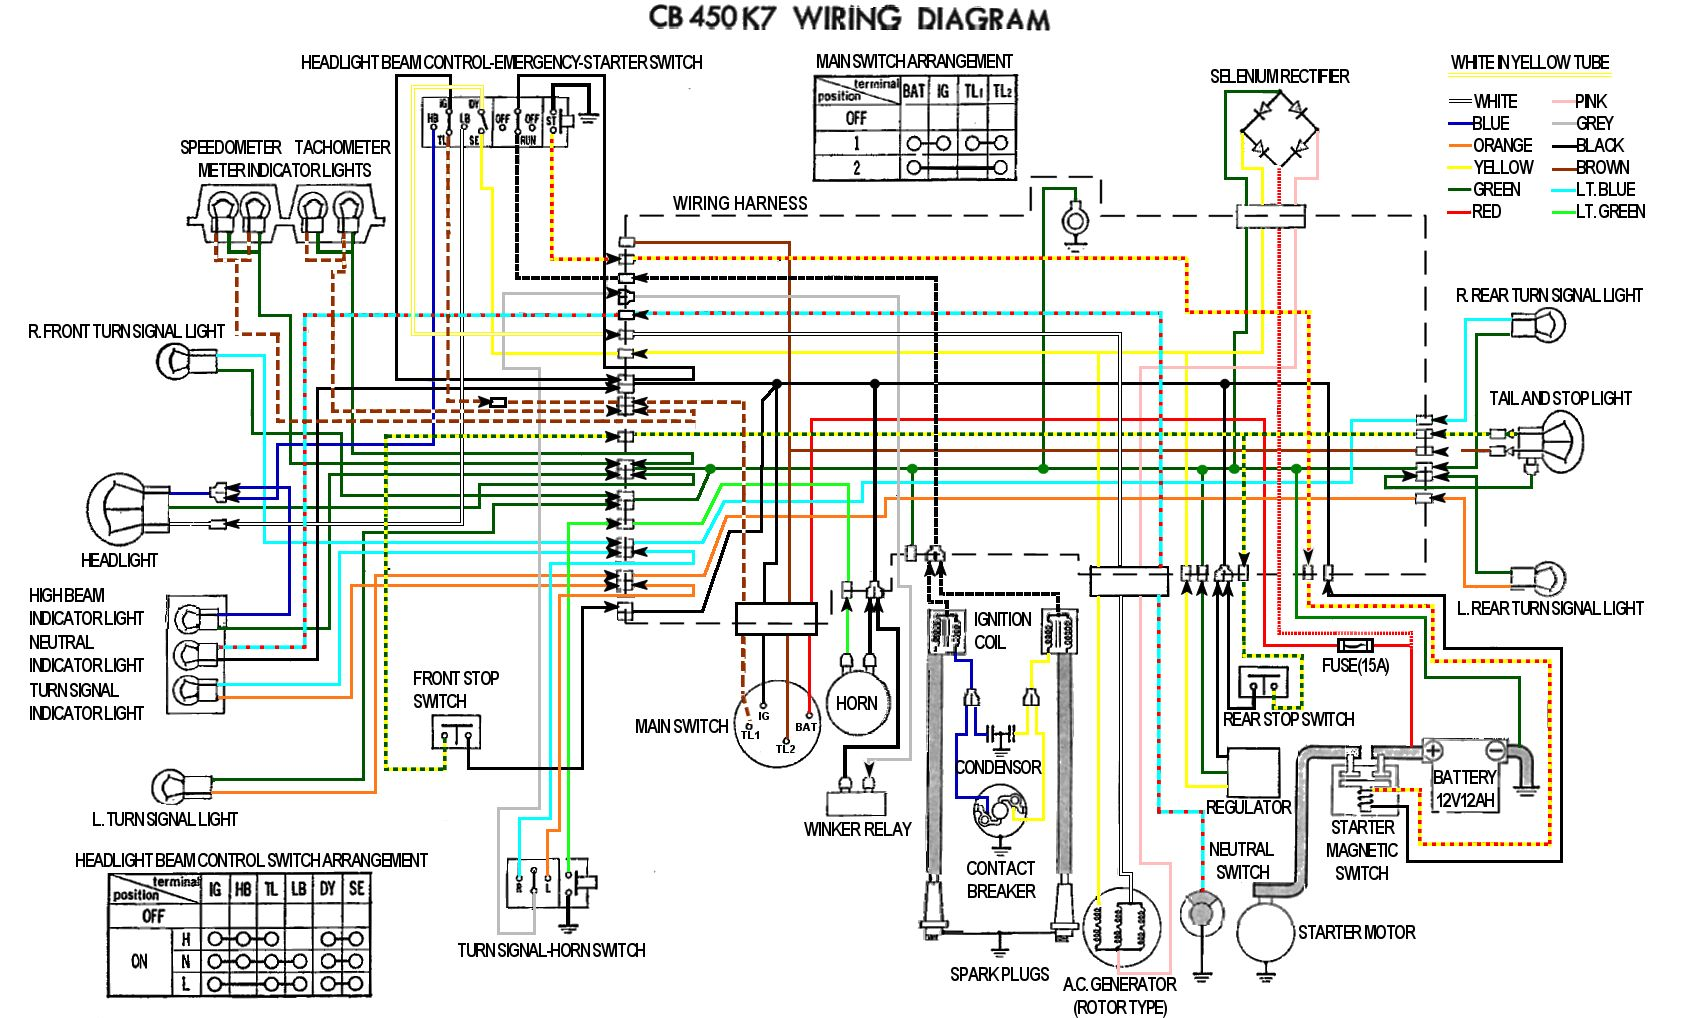 Cbr 250 Wiring Diagram | Wiring Diagram Honda Cbr Wiring Diagram on yamaha r6 wiring diagram, yamaha yzf 600 wiring diagram, triumph 675 wiring diagram, honda cbr 600 wiring diagram,